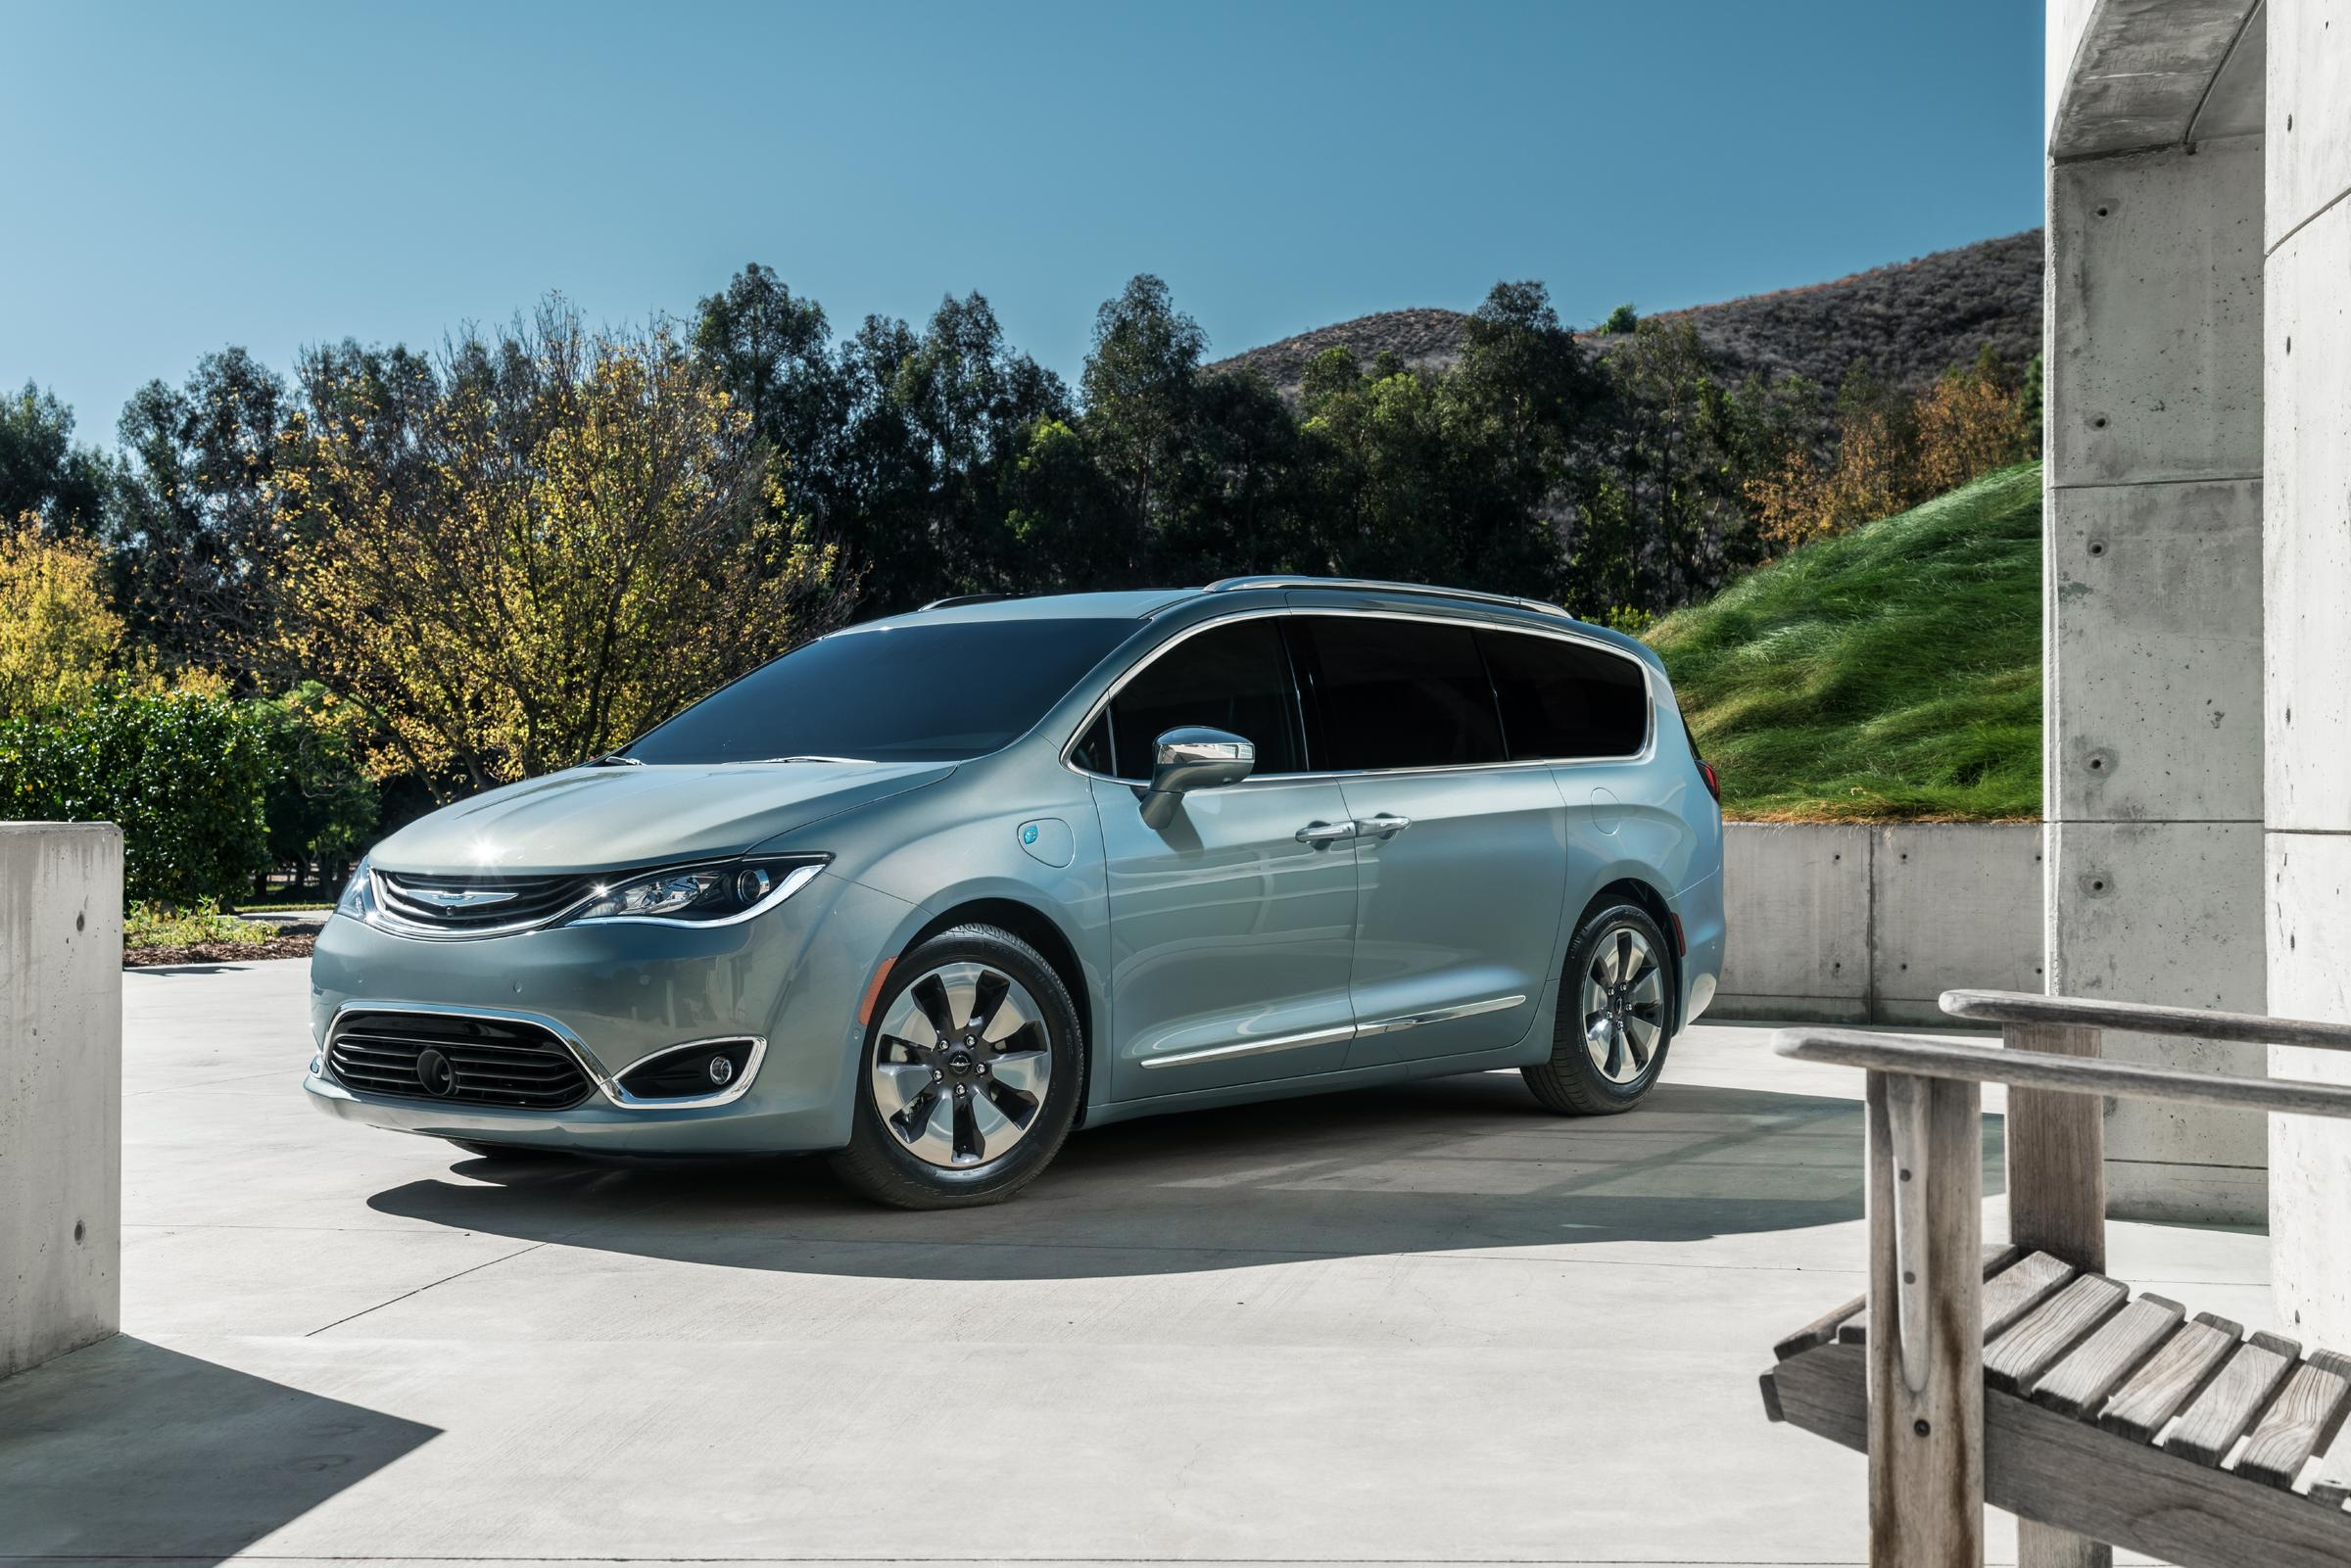 Fca Debuts A New Old Concept The Chrysler Pacifica Minivan